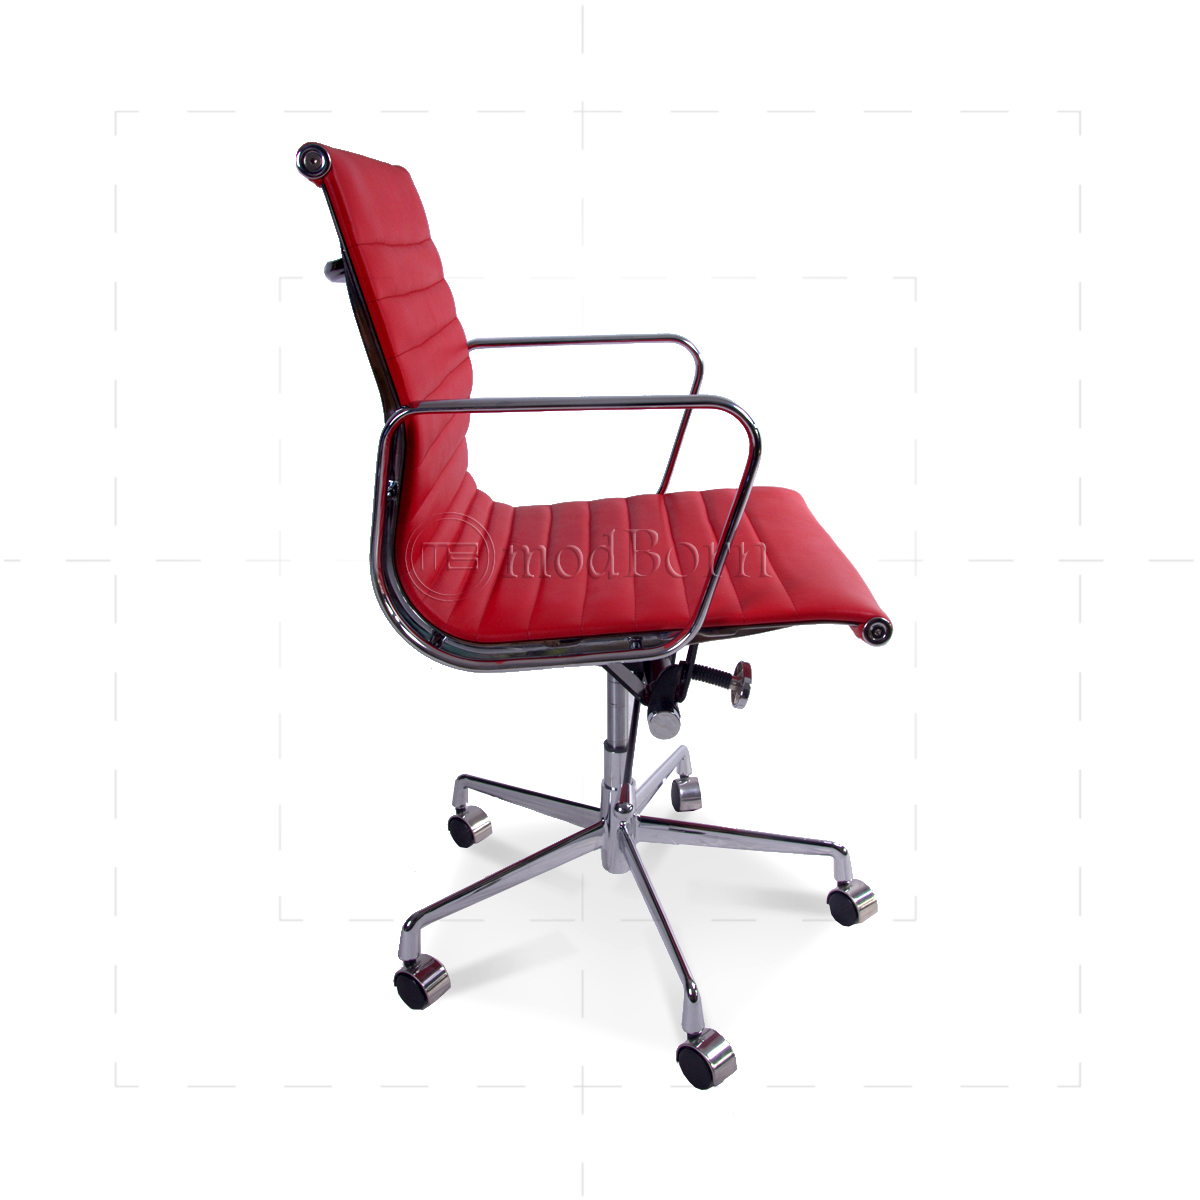 Ea117 eames style office chair low back ribbed red leather for Eames replica deutschland